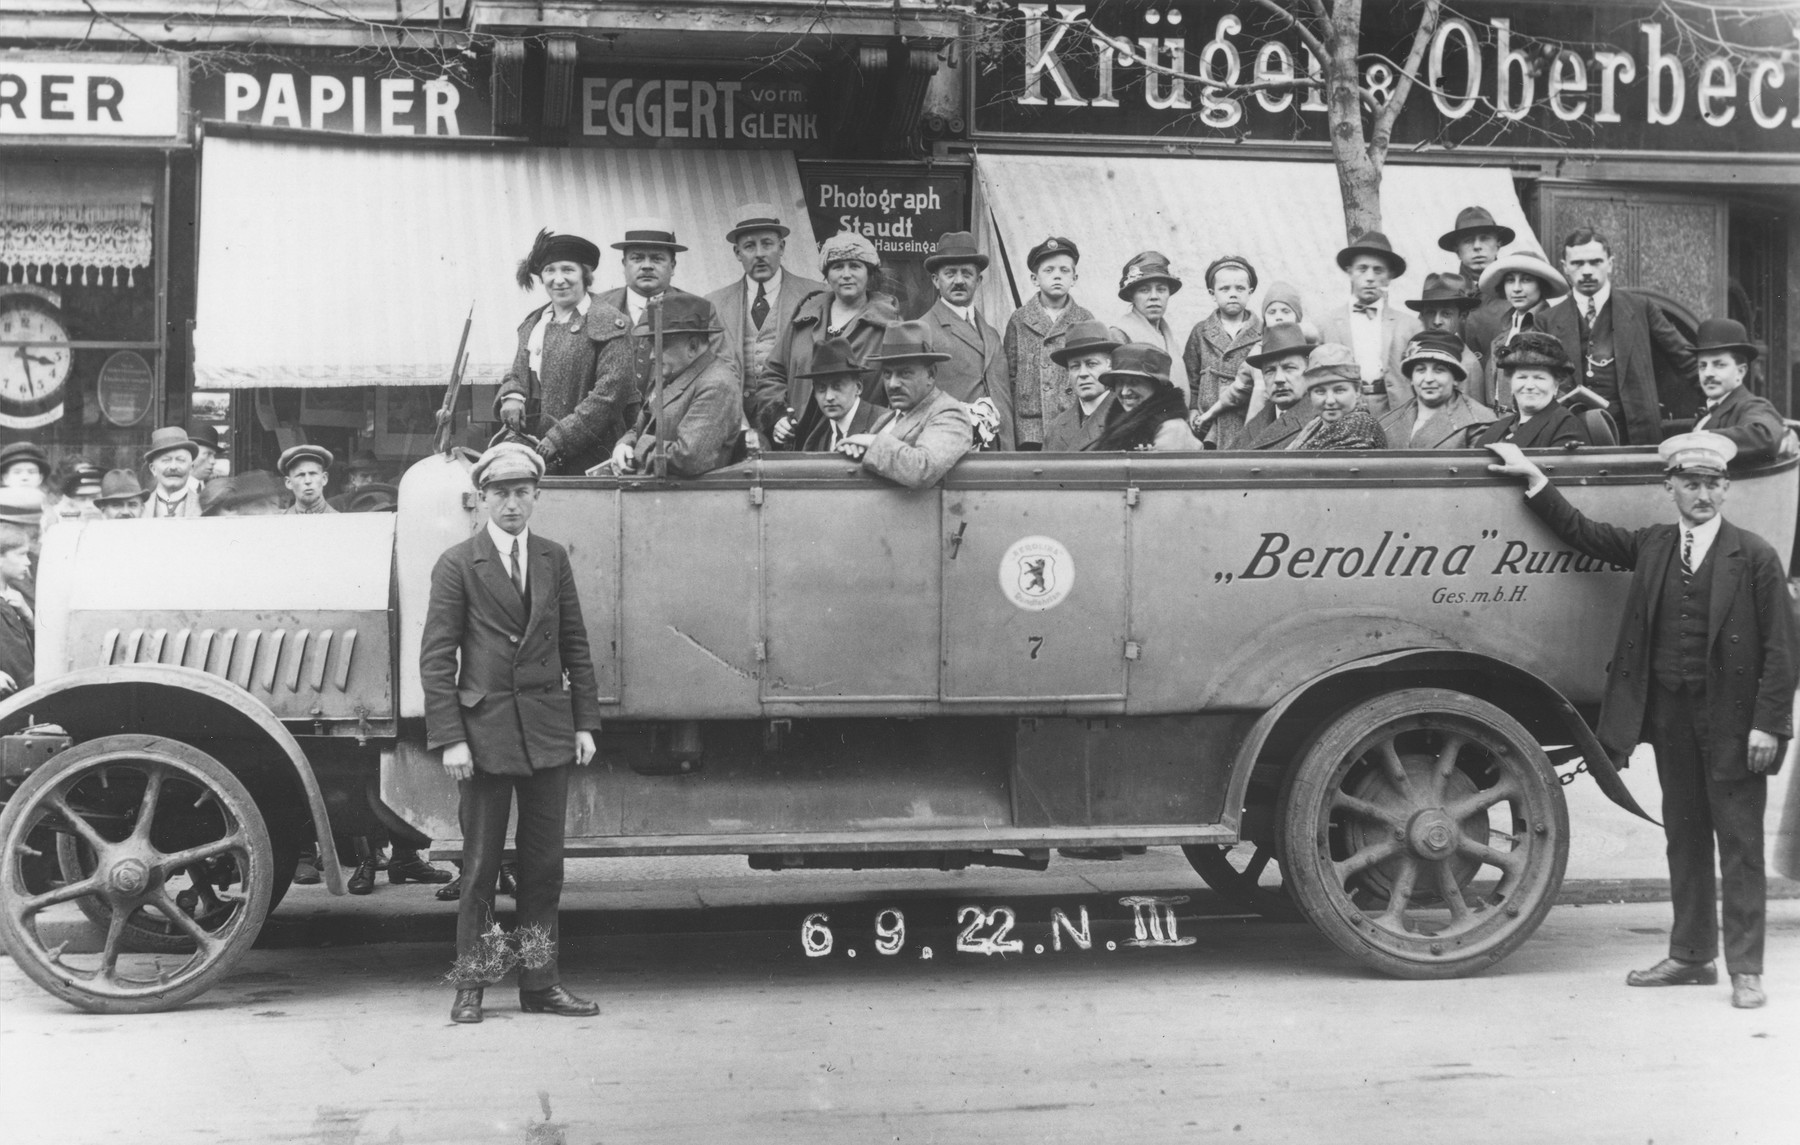 Dr. Adolf Huber and his wife, Paula (Knopfmacher) Huber, ride in the back of an open bus during a tour of Berlin.  The couple is pictured in the center of the vehicle behind the coor with the seal.